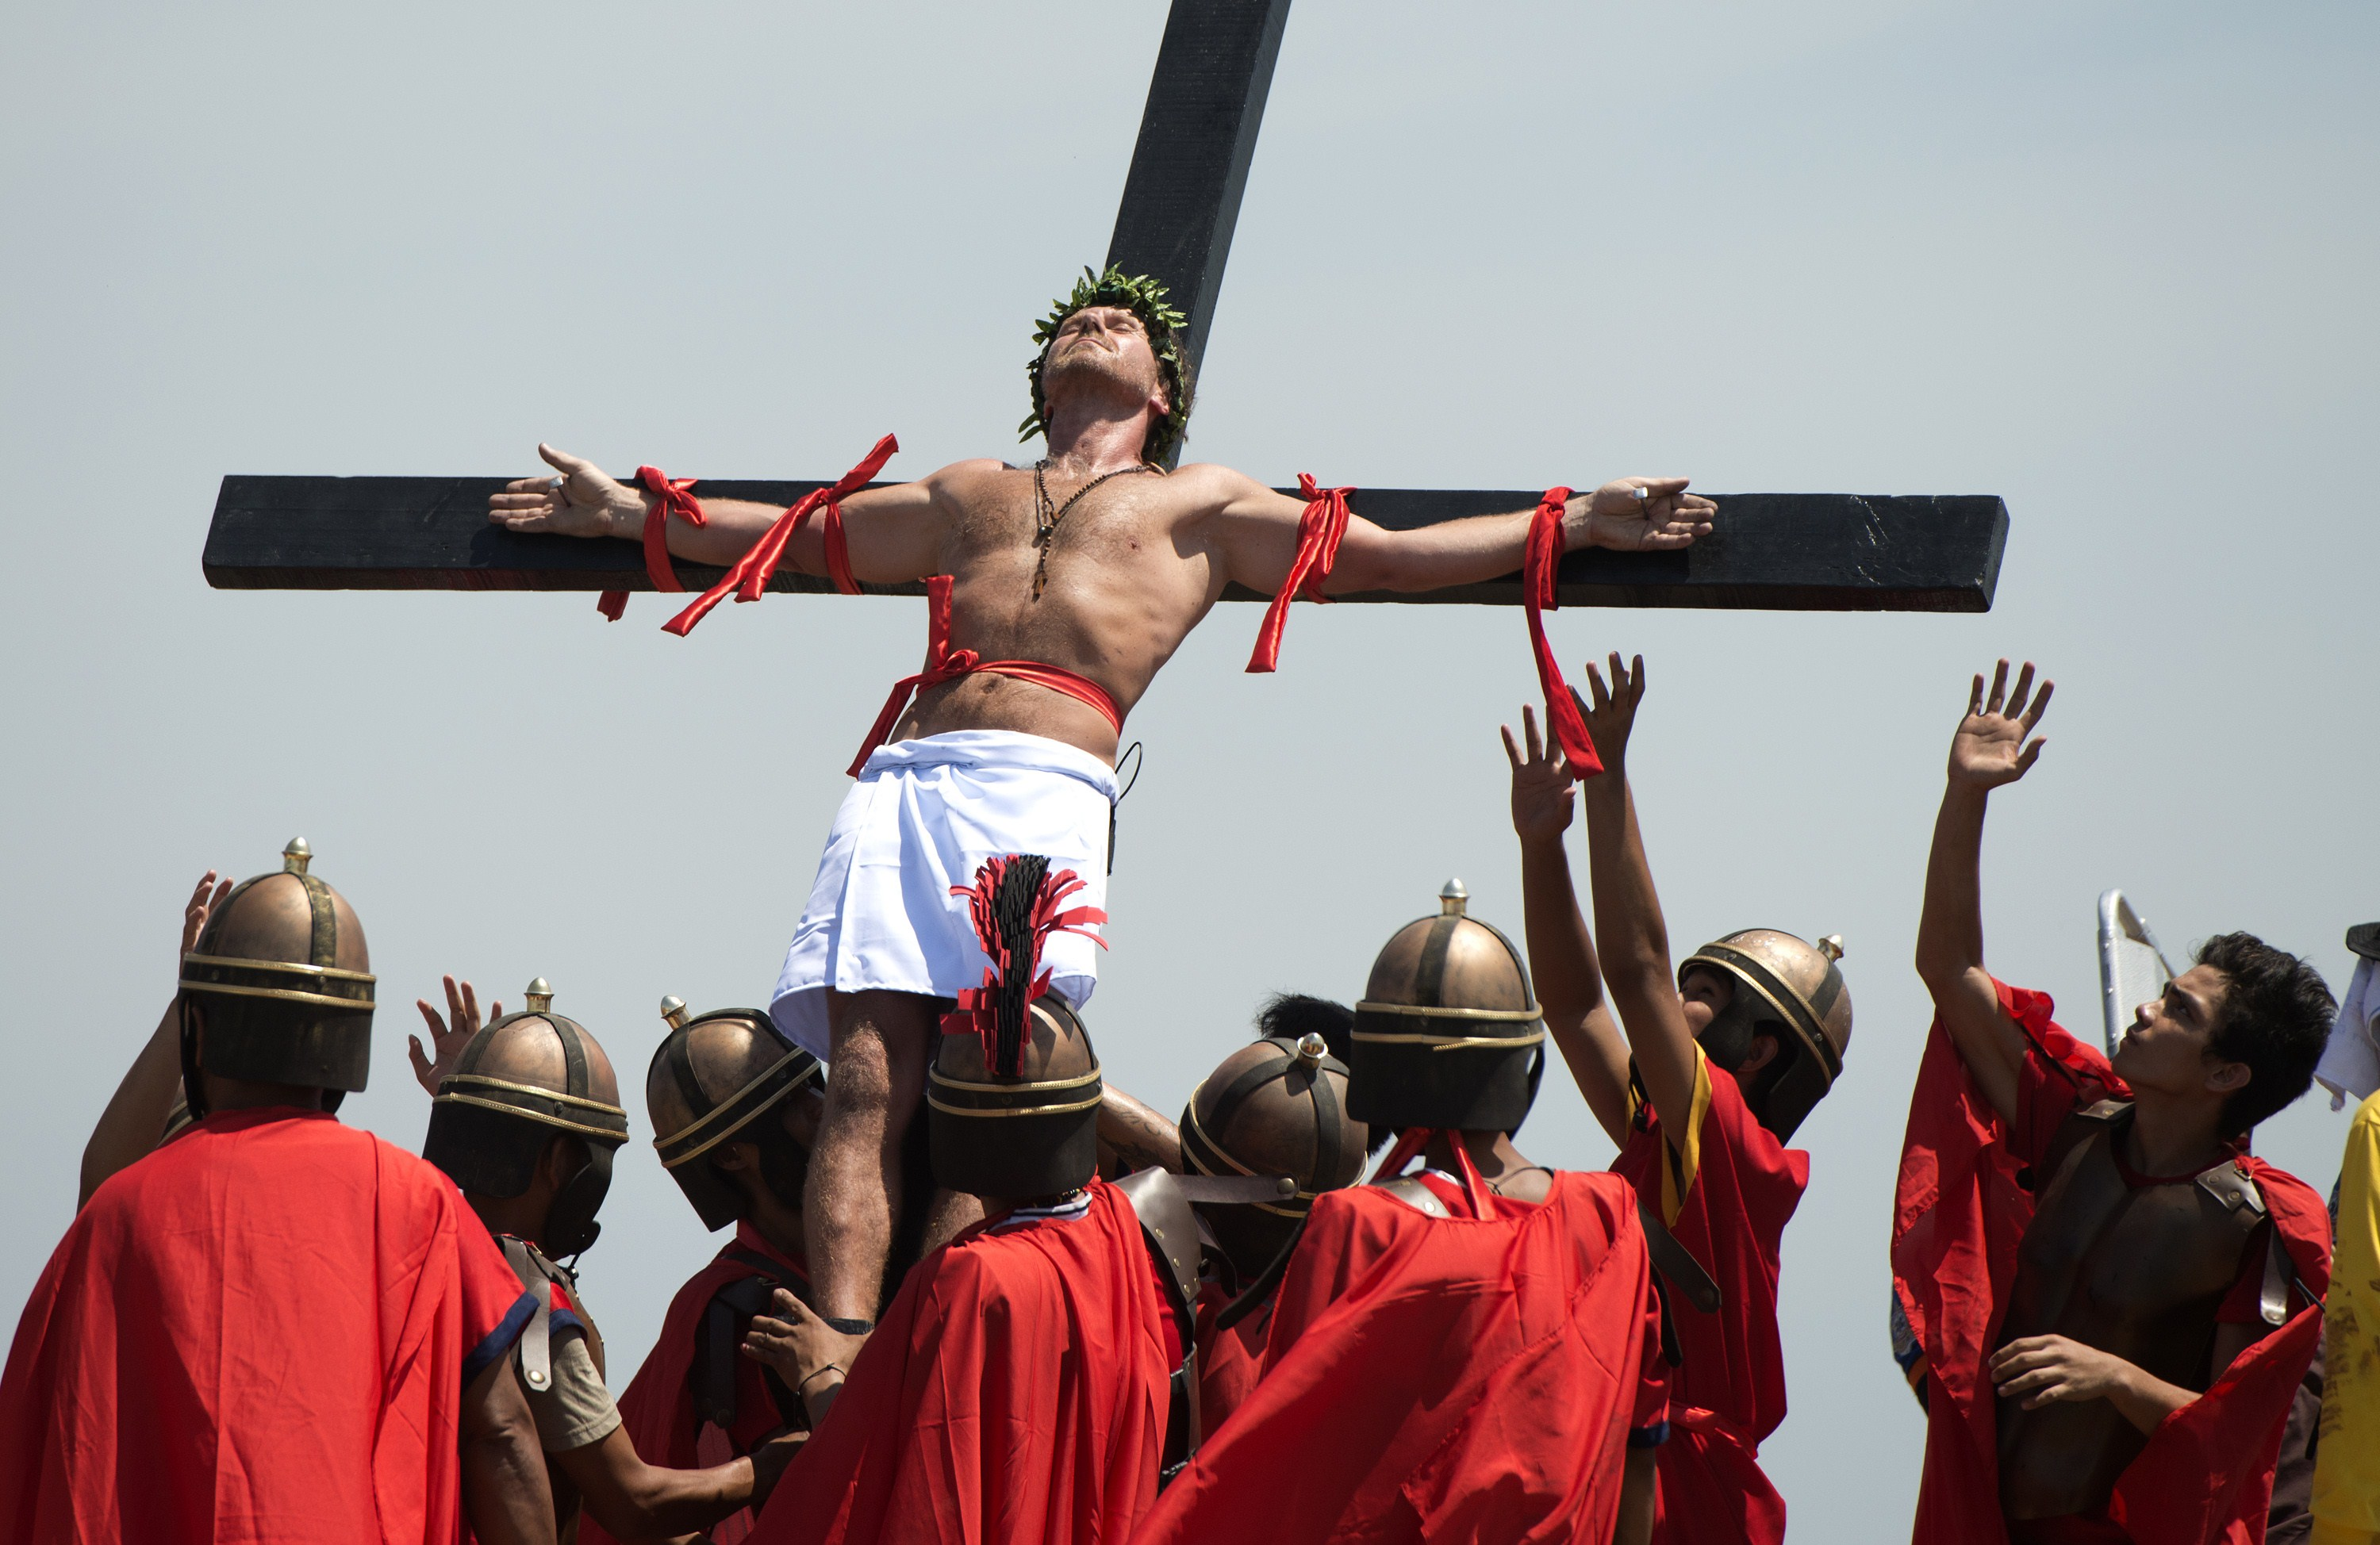 Danish film maker Lasse Spang Olsen is nailed to a cross during the a re-enactment of the Crucifixion of Christ during Good Friday celebrations in Cutud, Pampanga, north of Manila on April 18, 2014.  Eight Filipinos and a Dane re-enacted the death of Jesus Christ on Friday by nailing themselves to crosses before thousands of people in a gruesome annual Easter spectacle in the Philippines. Photo by Noel Celis/AFP/Getty Images